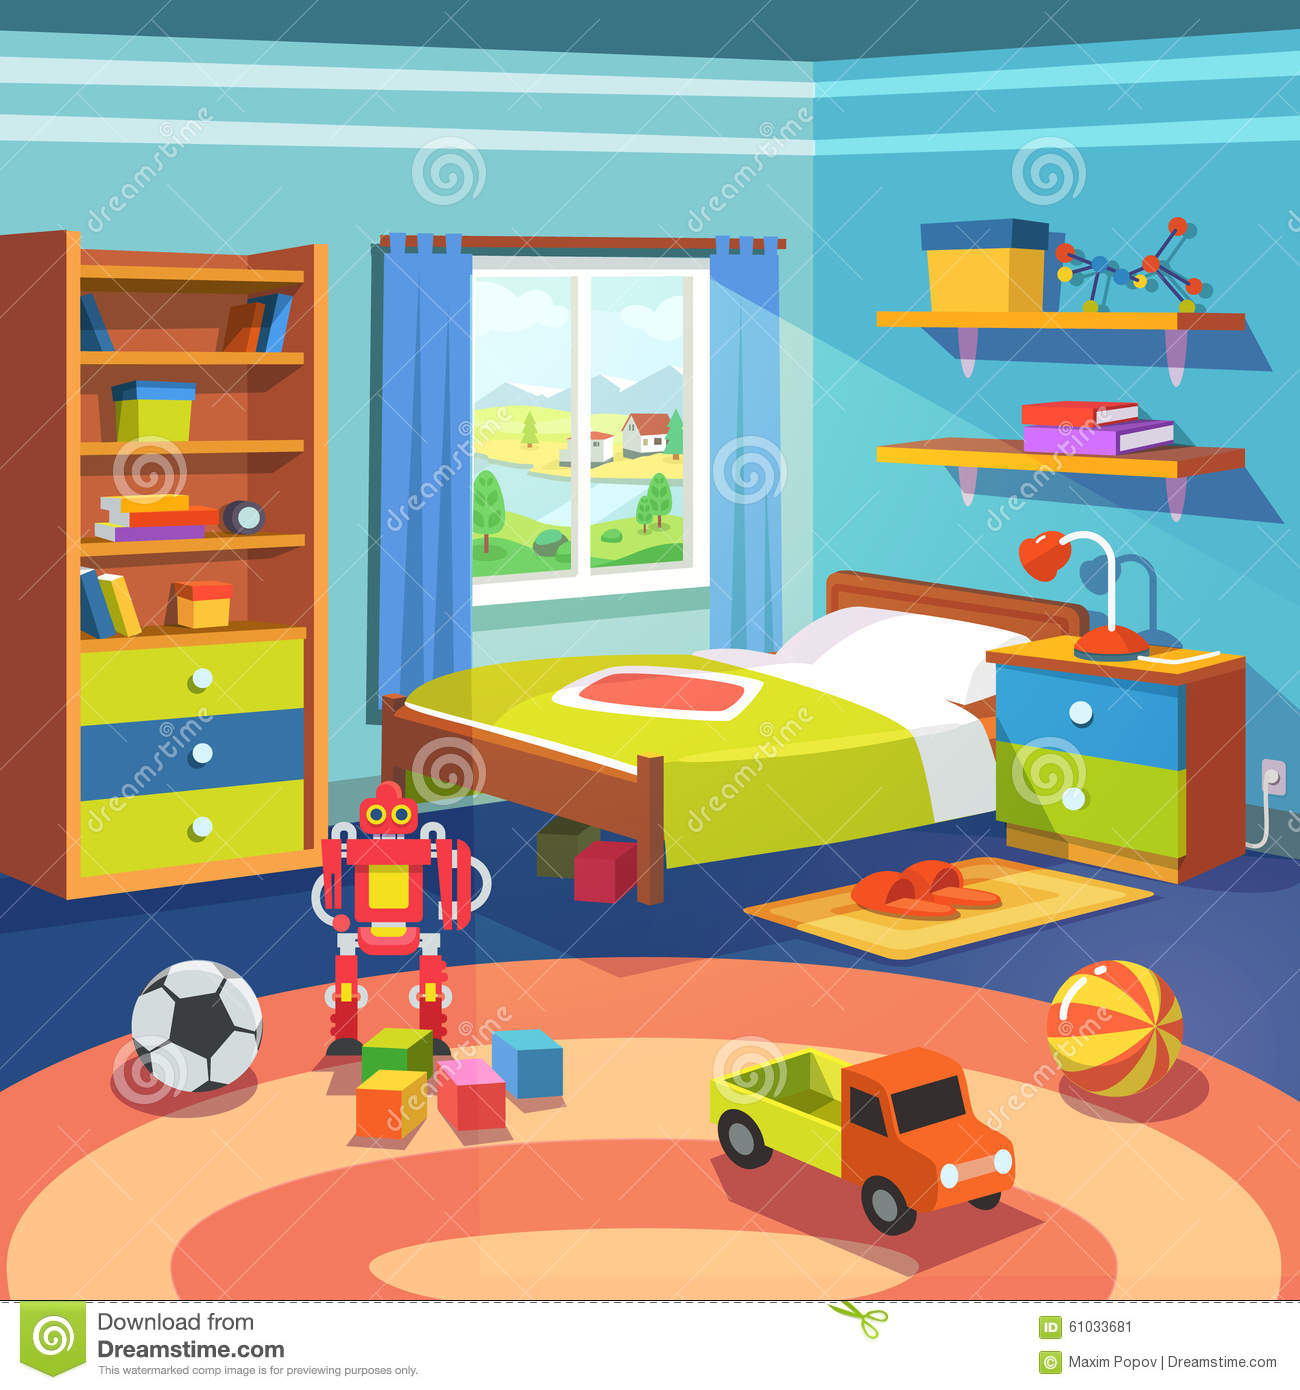 Boy Room With Bed Cupboard And Toys On The Floor Stock Vector Image 61033681